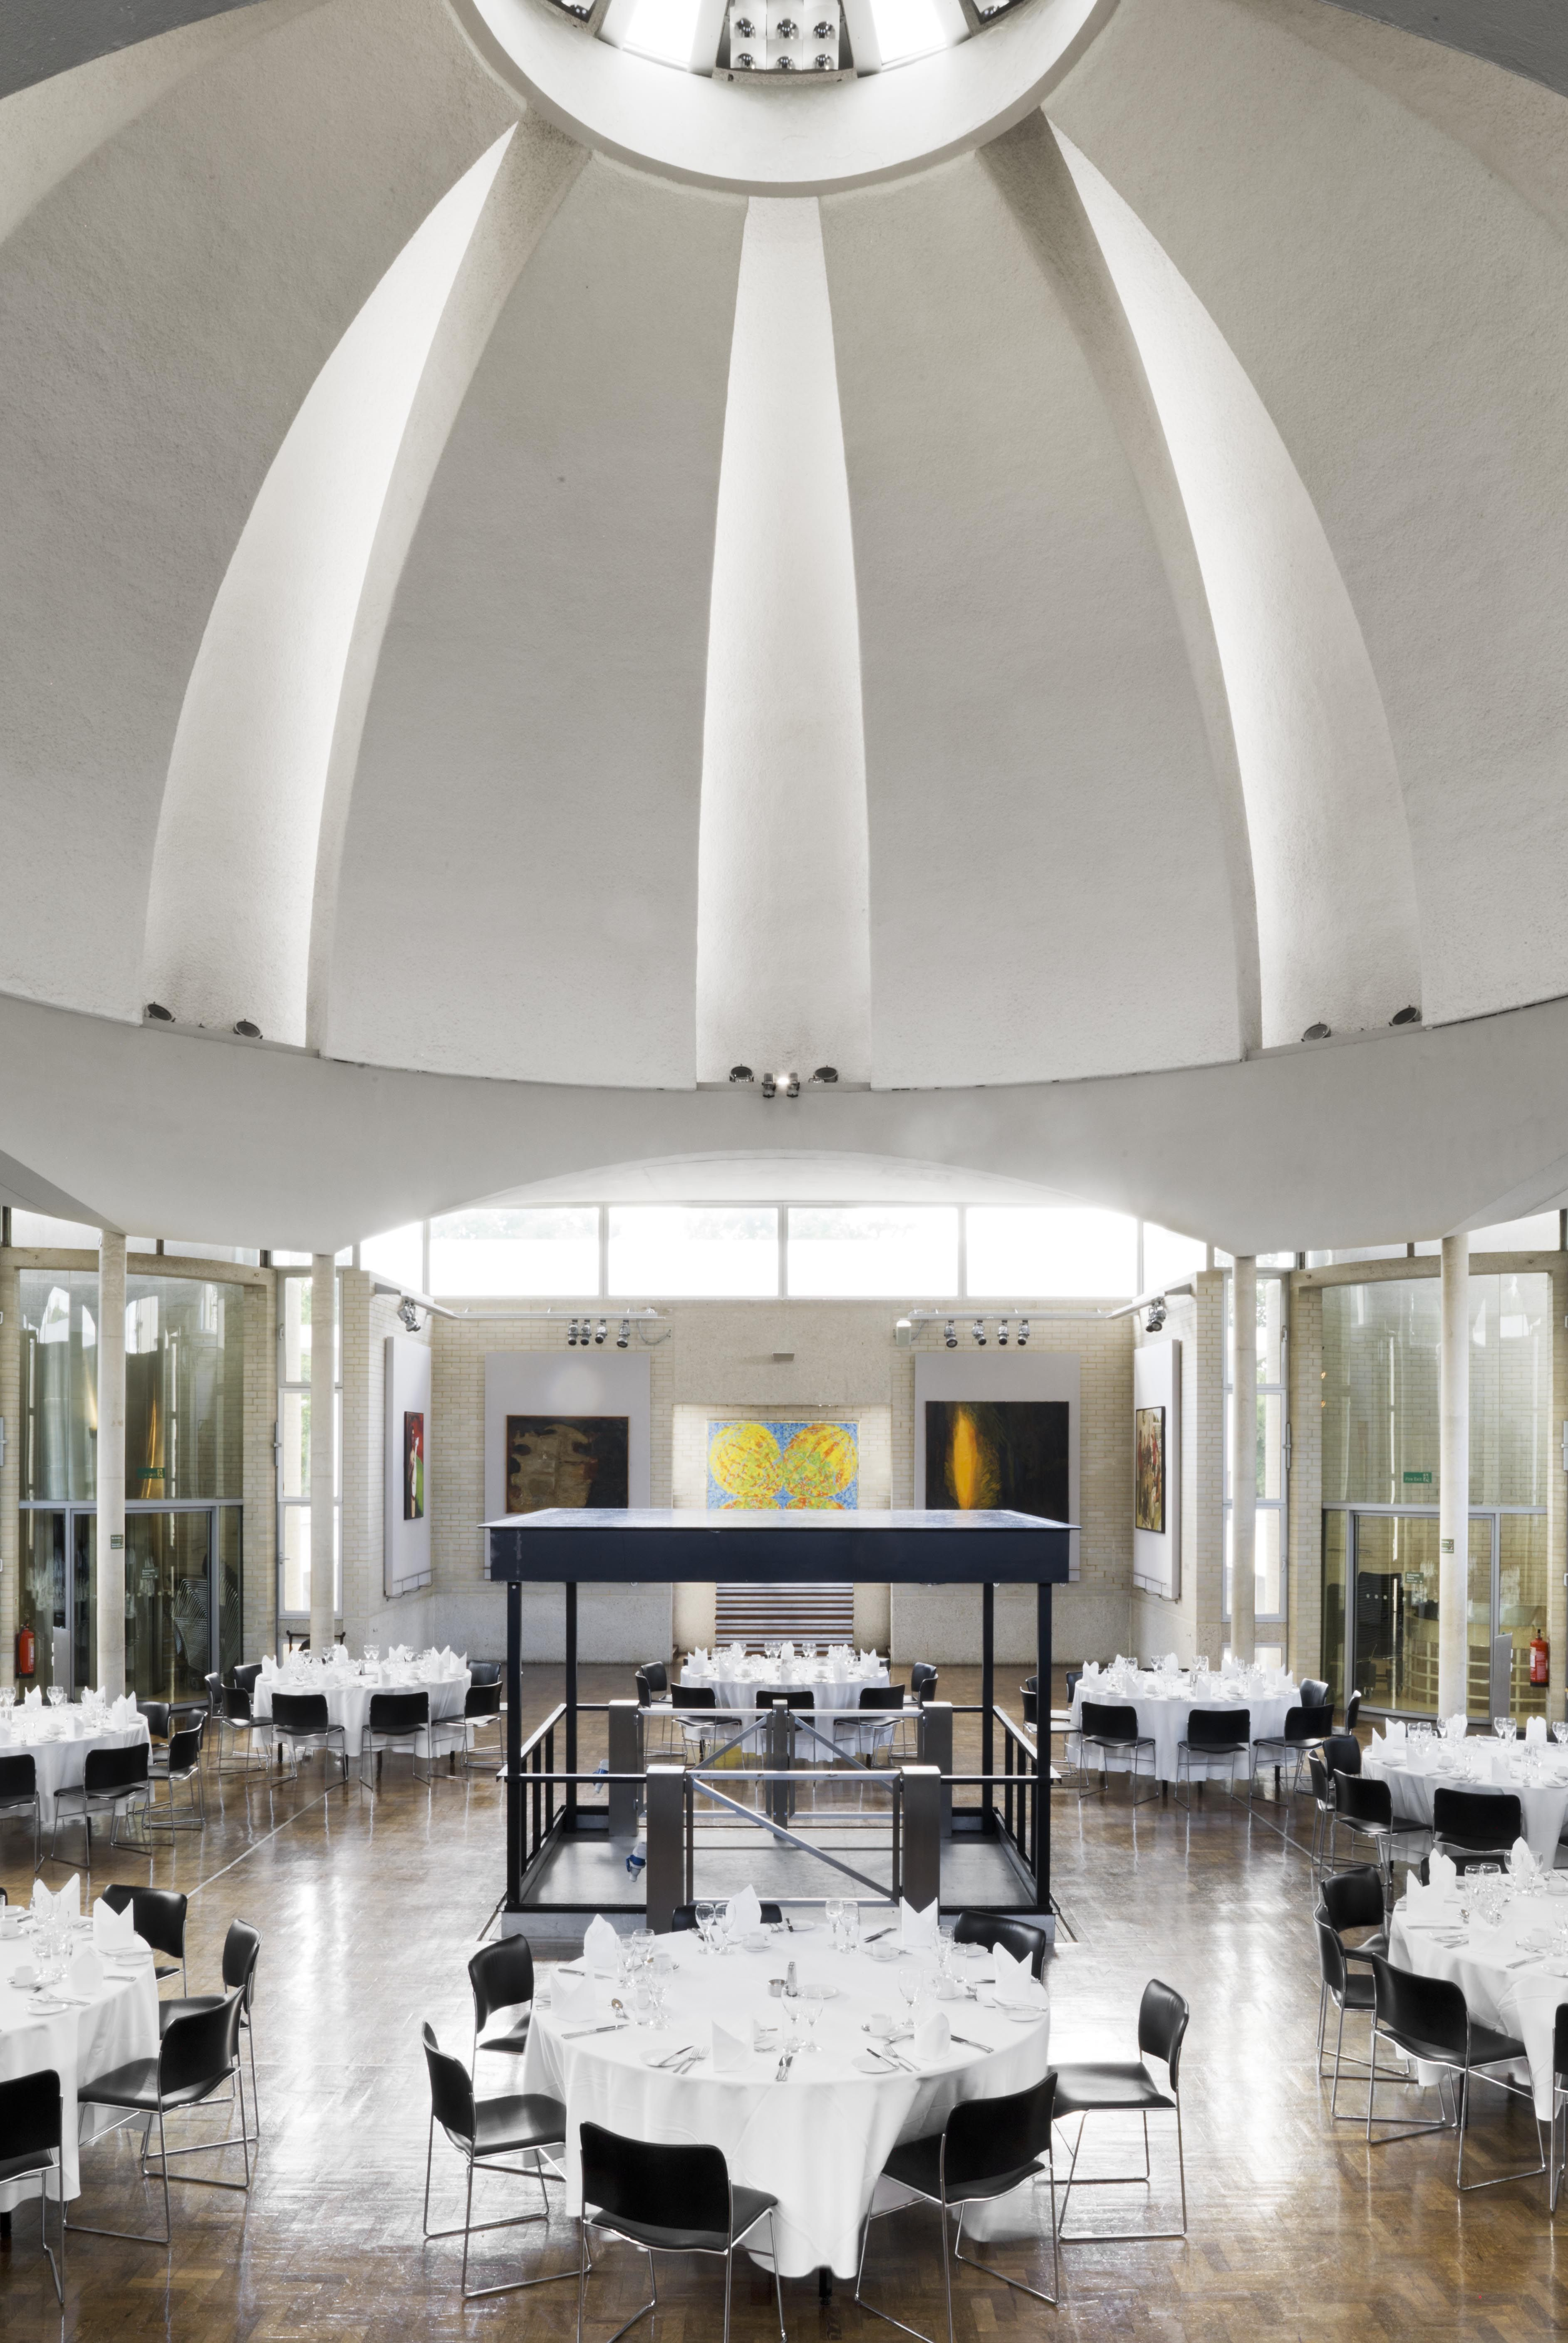 Interior of New Hall Murray Edwards College Dining Hall DP